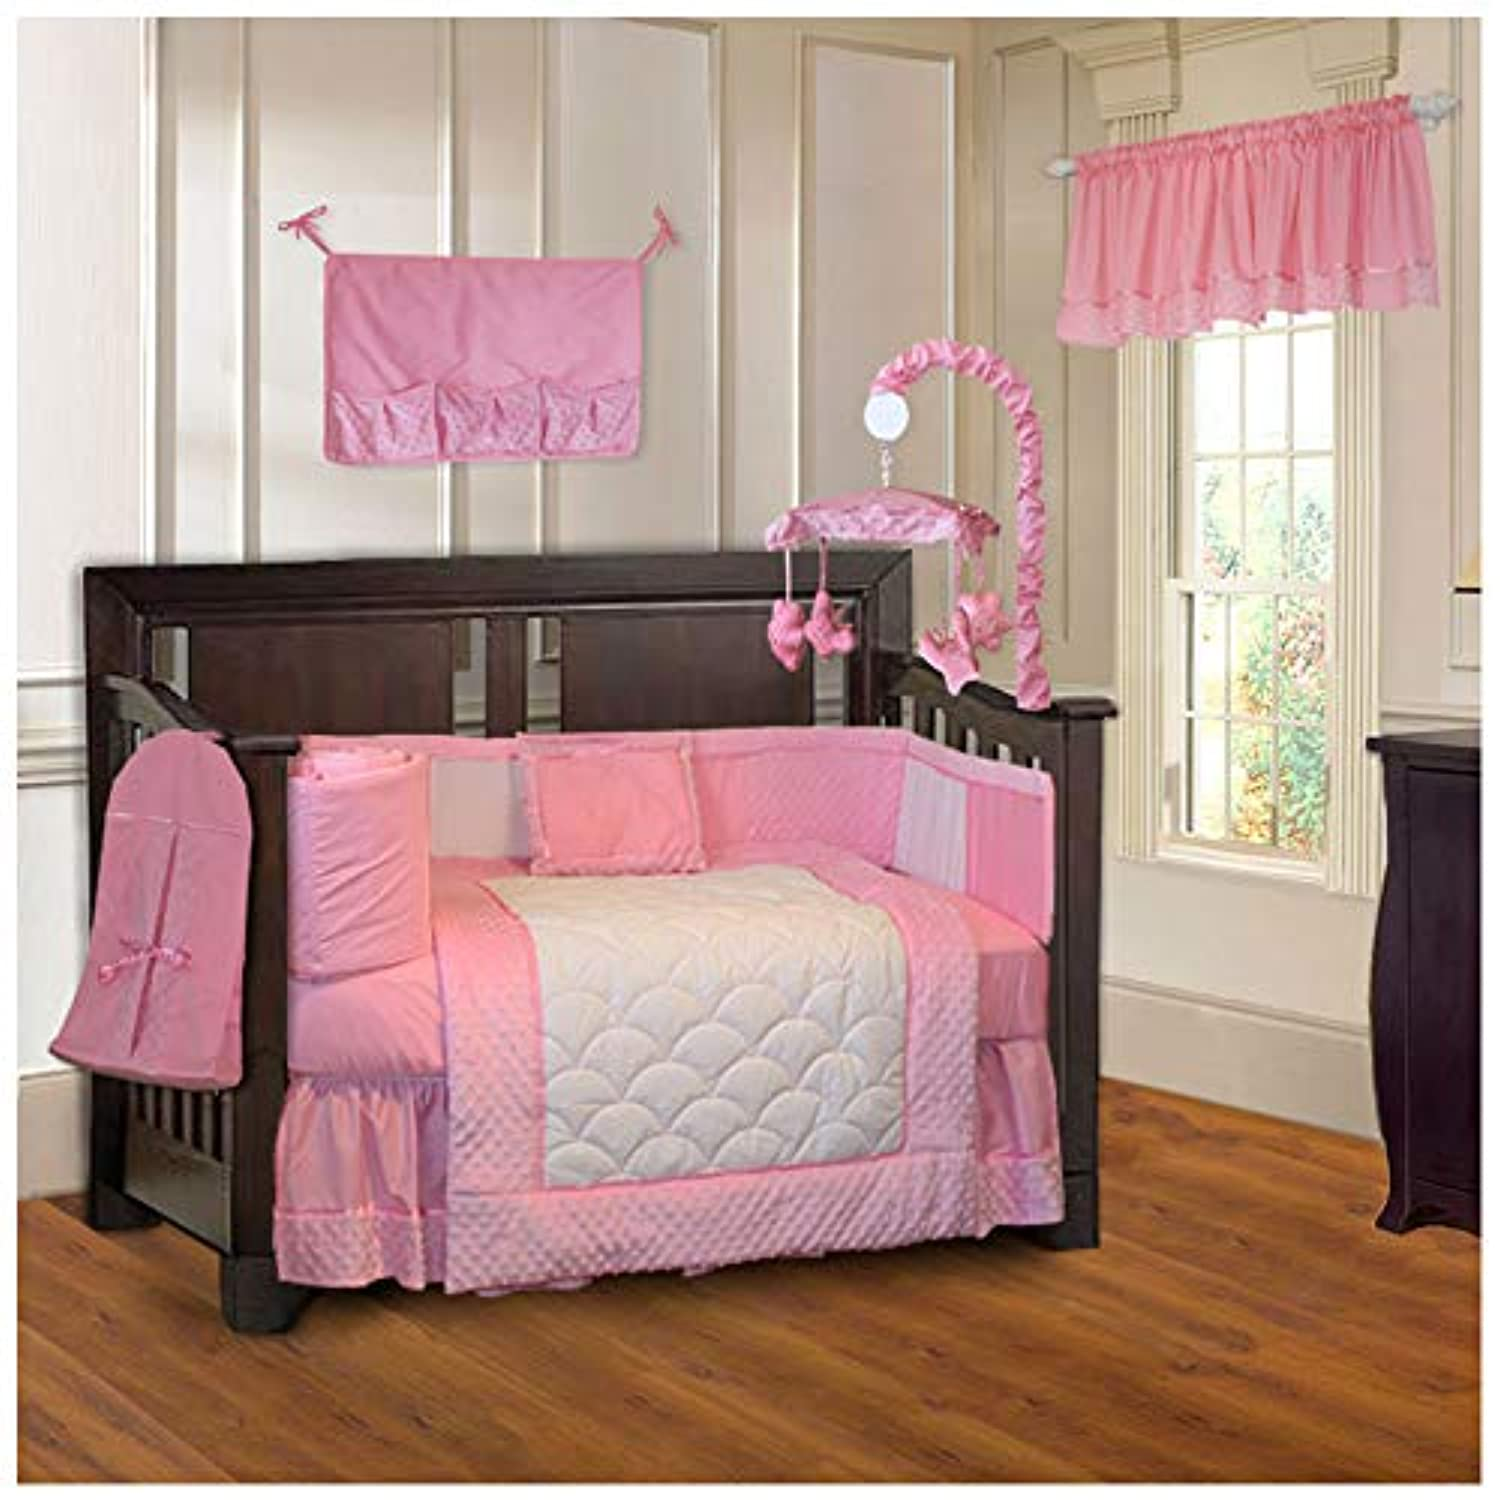 BabyFad Minky Pink 10 Piece Baby Crib Bedding Set by BabyFad